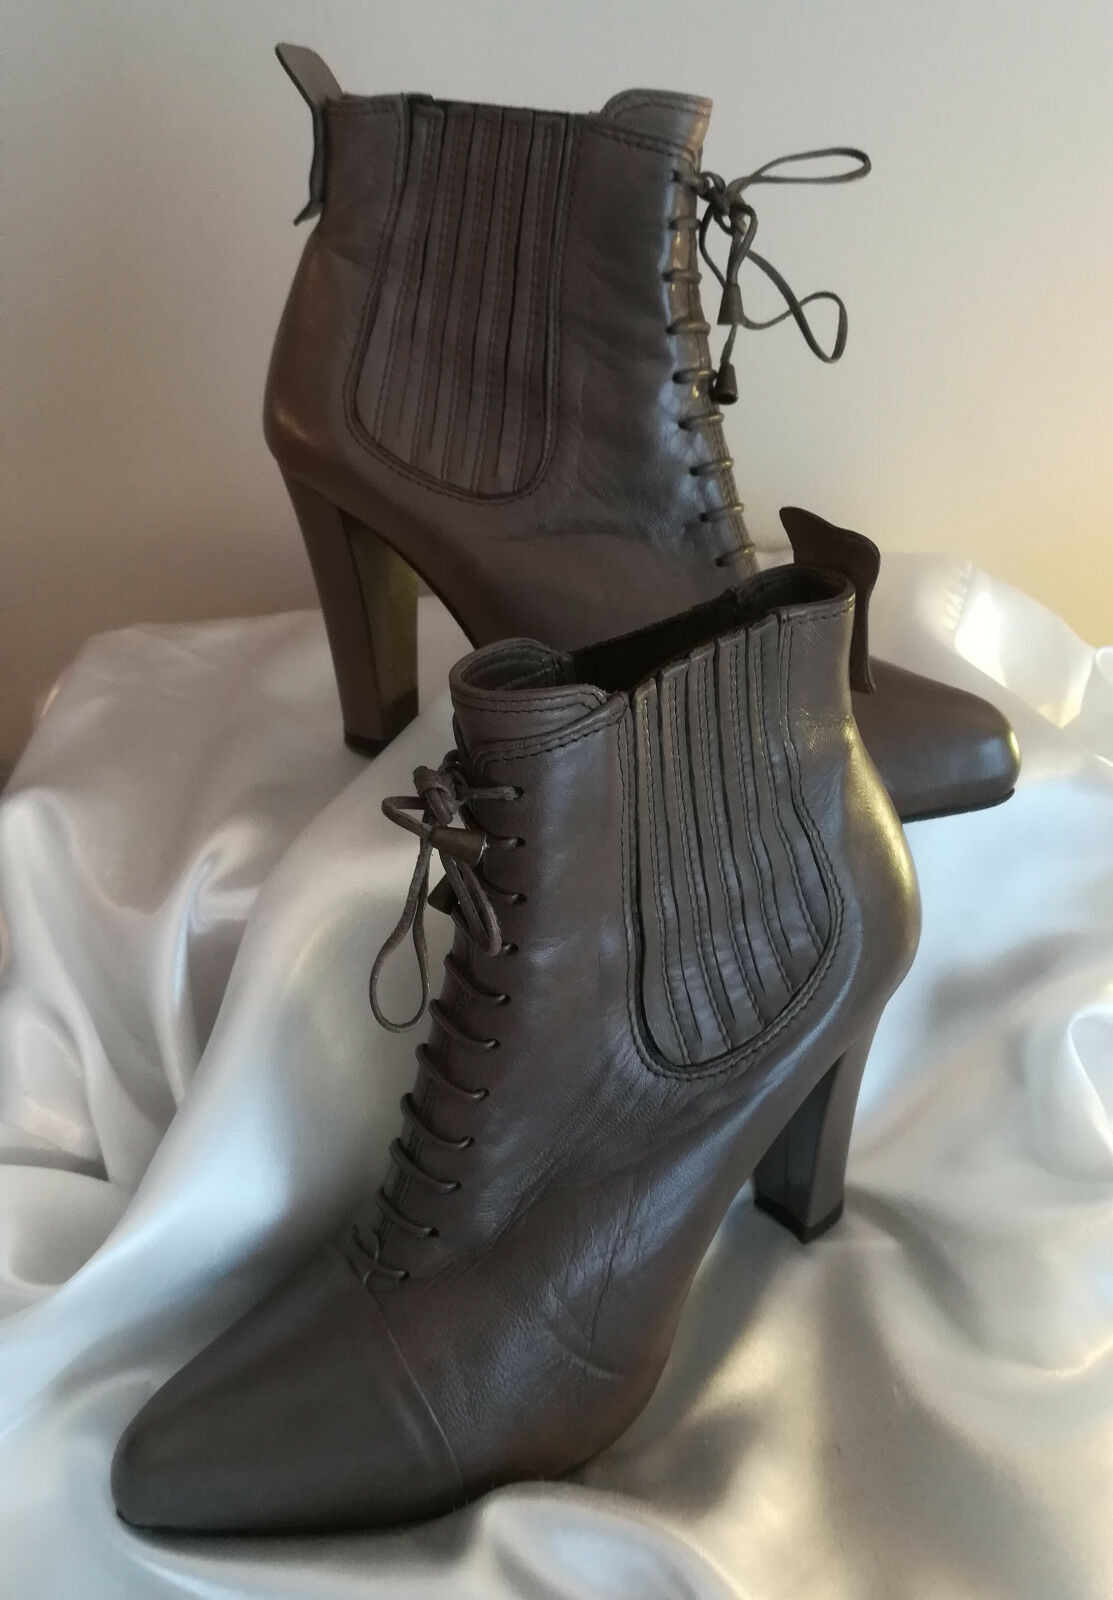 THE SELLER - BOTTINES CUIR FEMME - CUIR BOTTINES GRIS FONCÉ - POINTURE 37 b93c85